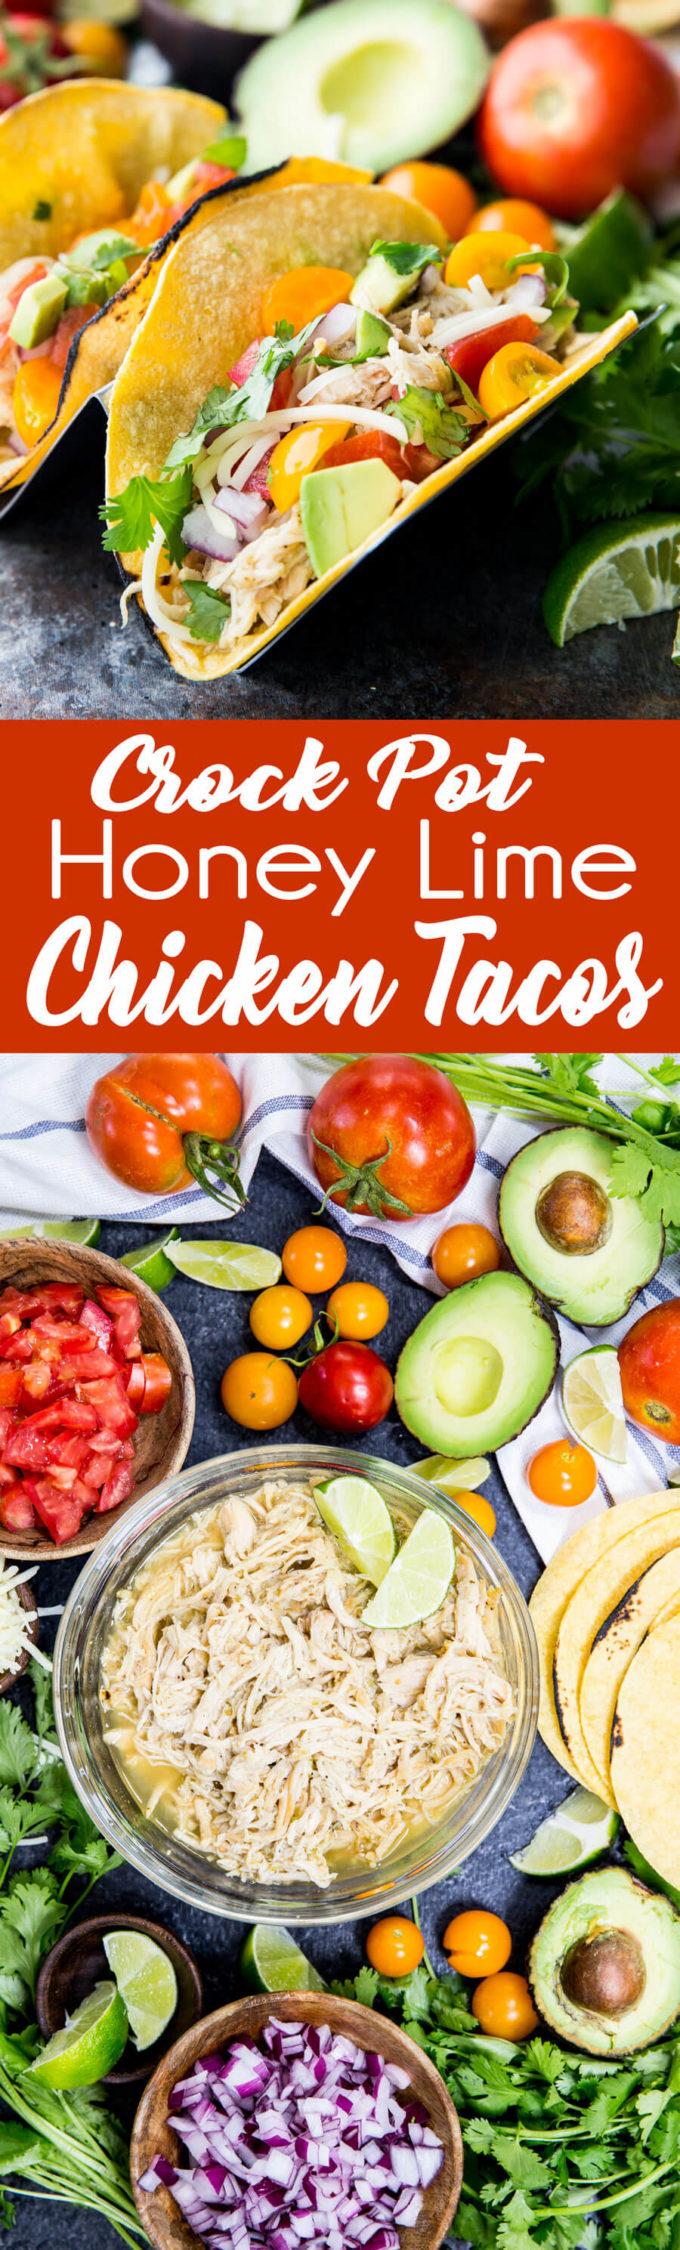 This crock pot or slow cooker honey lime chicken tacos recipe is the best thing ever. Super flavorful chicken, and a perfect party food.